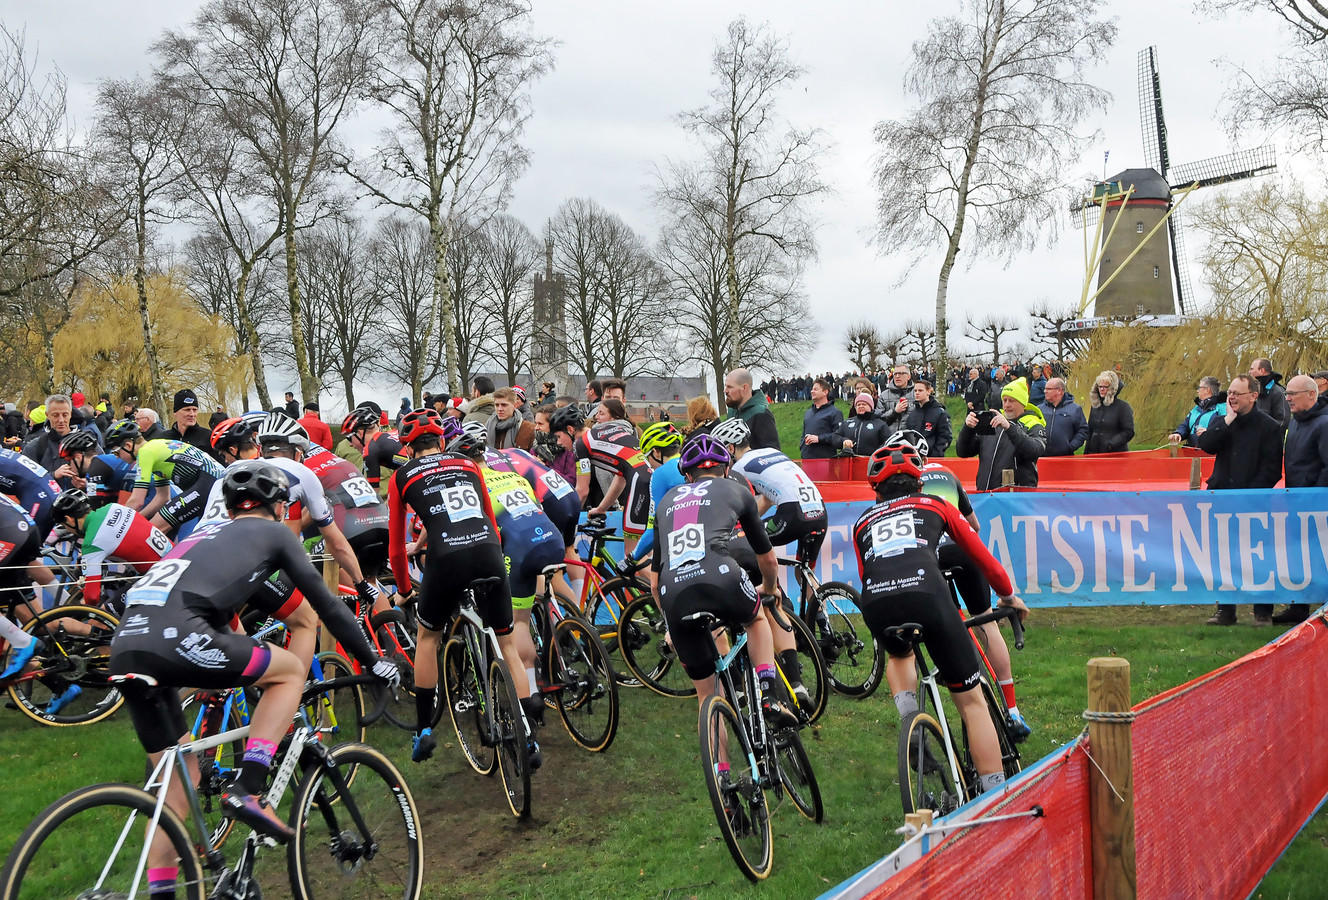 De start van de Vestingcross, begin dit jaar.